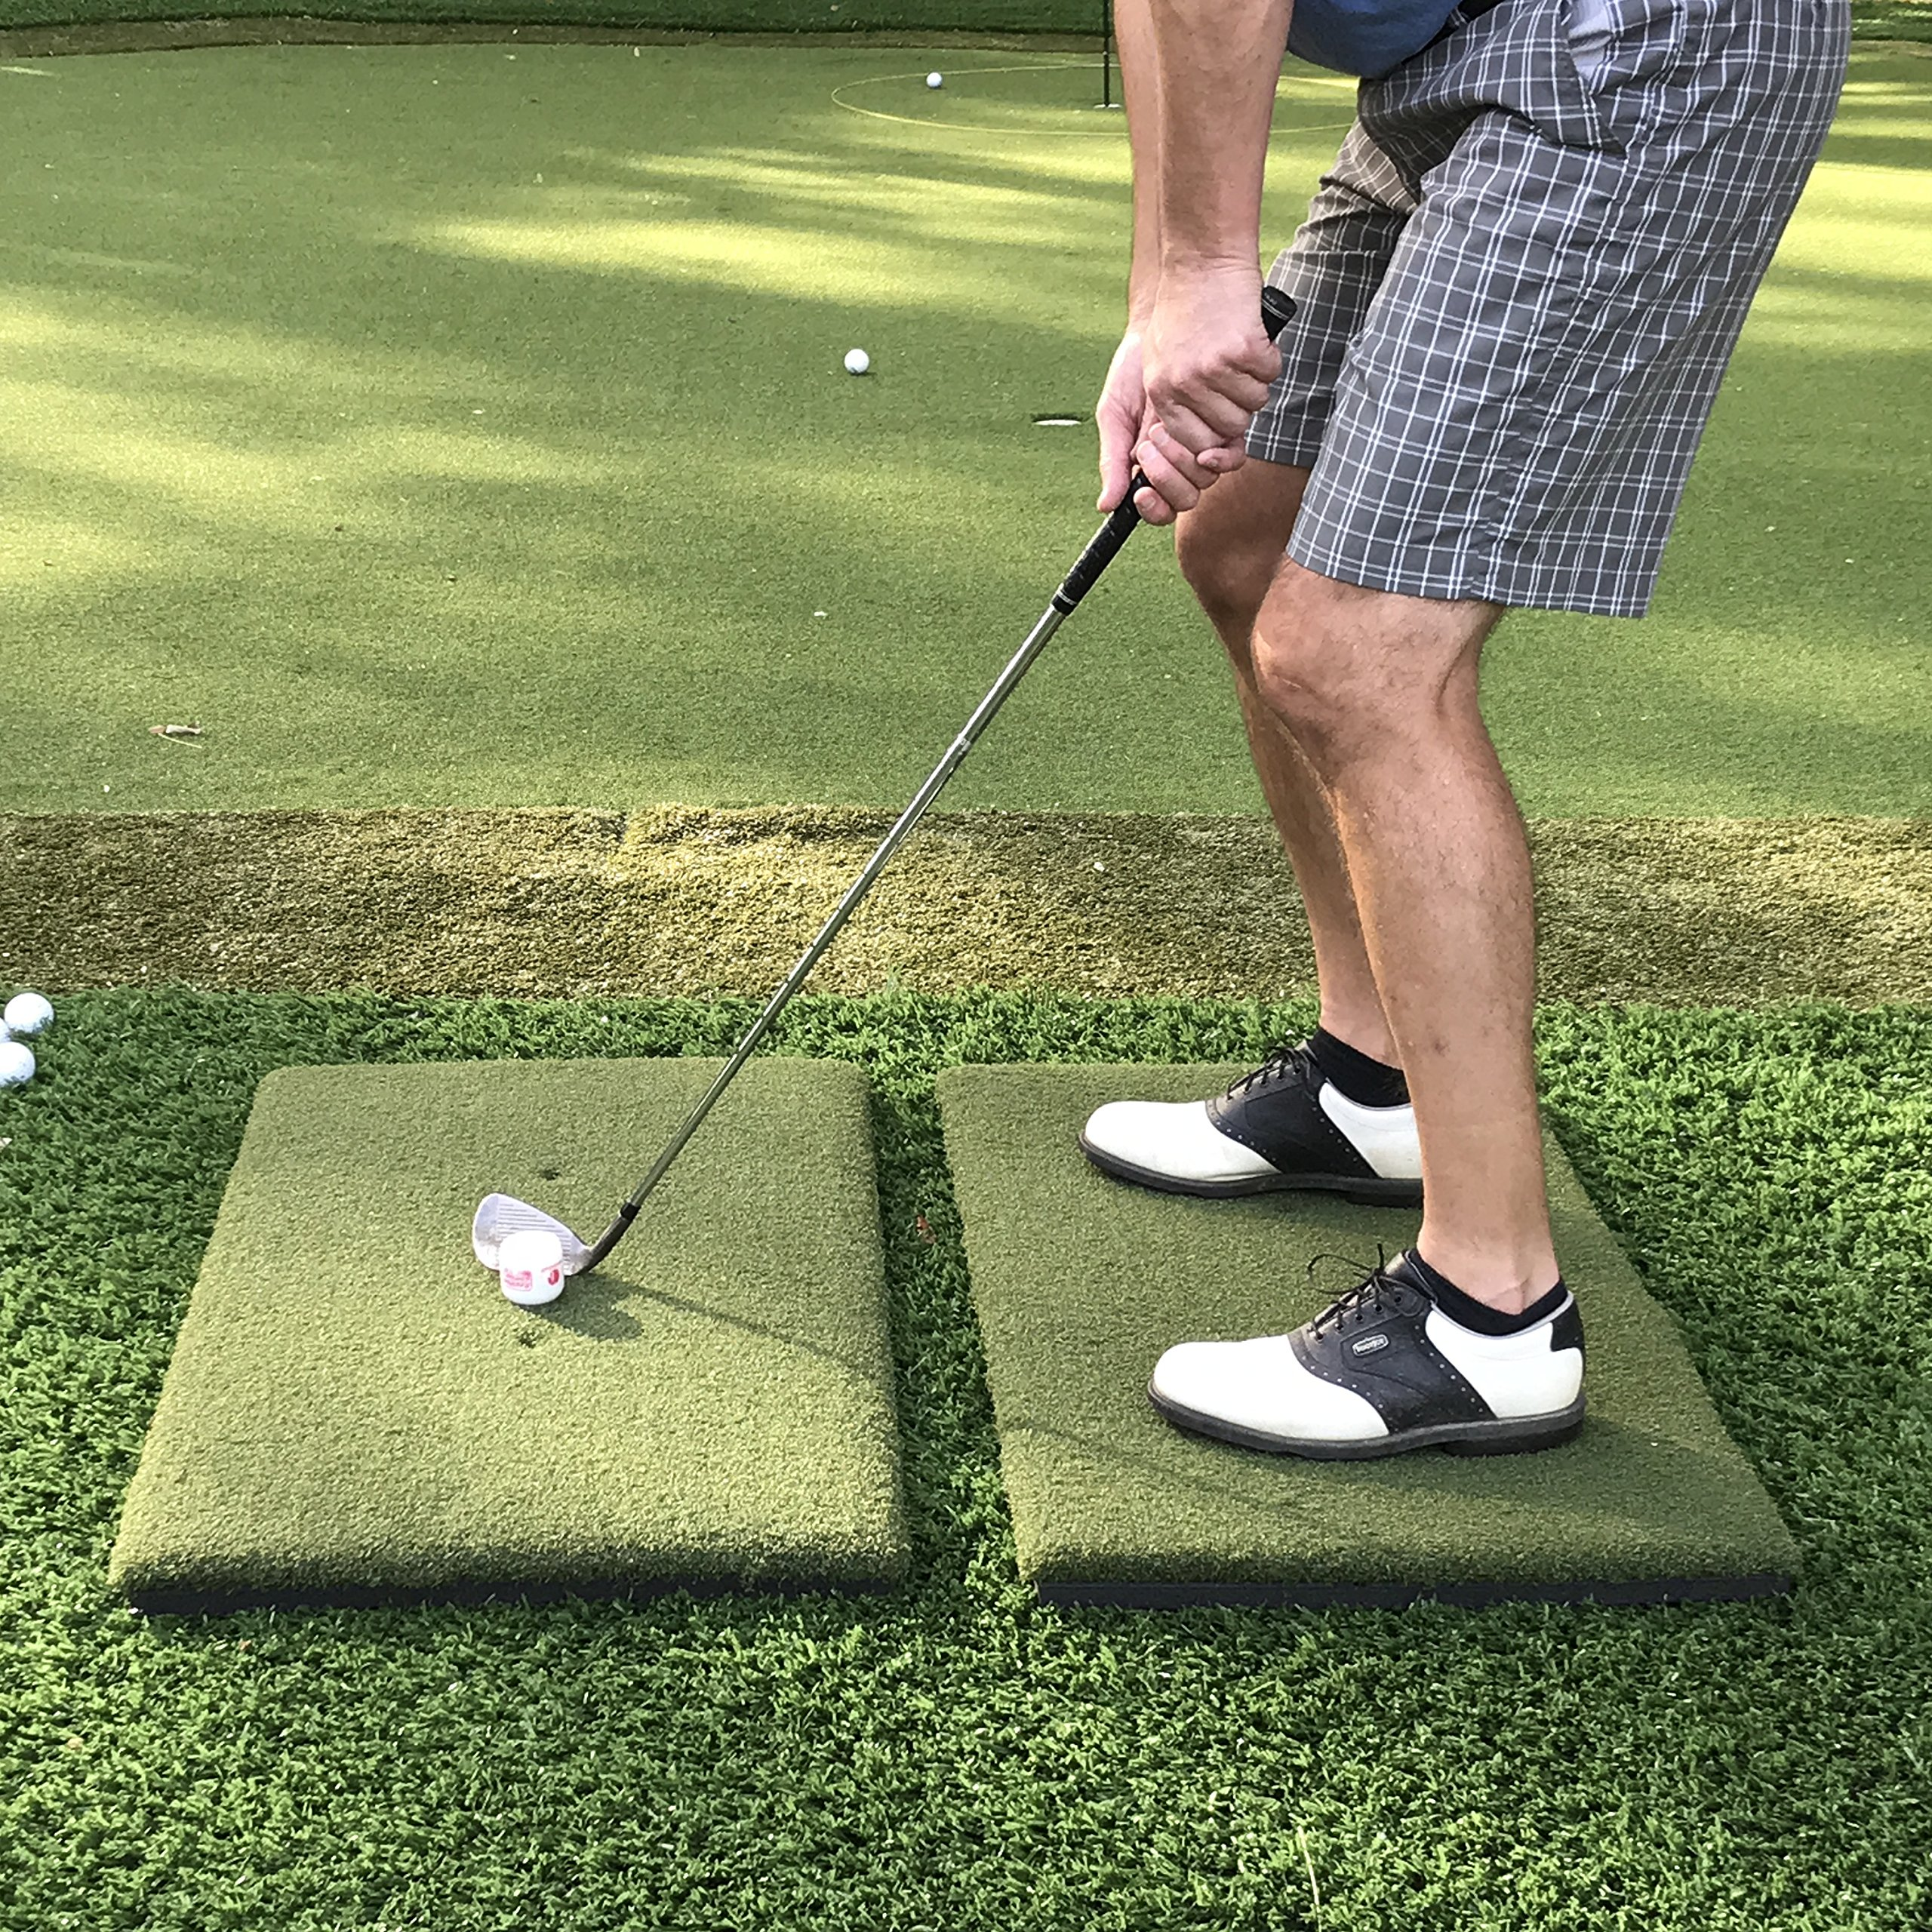 Real Feel Golf Mats The Original Country Club Elite The First Golf Mat That Takes A Real Tee and Lets You Swing Down Through, Simulator, Indoor, Outdoor Use. Modular 2-Piece Twin-Combo System by Real Feel Golf Mats